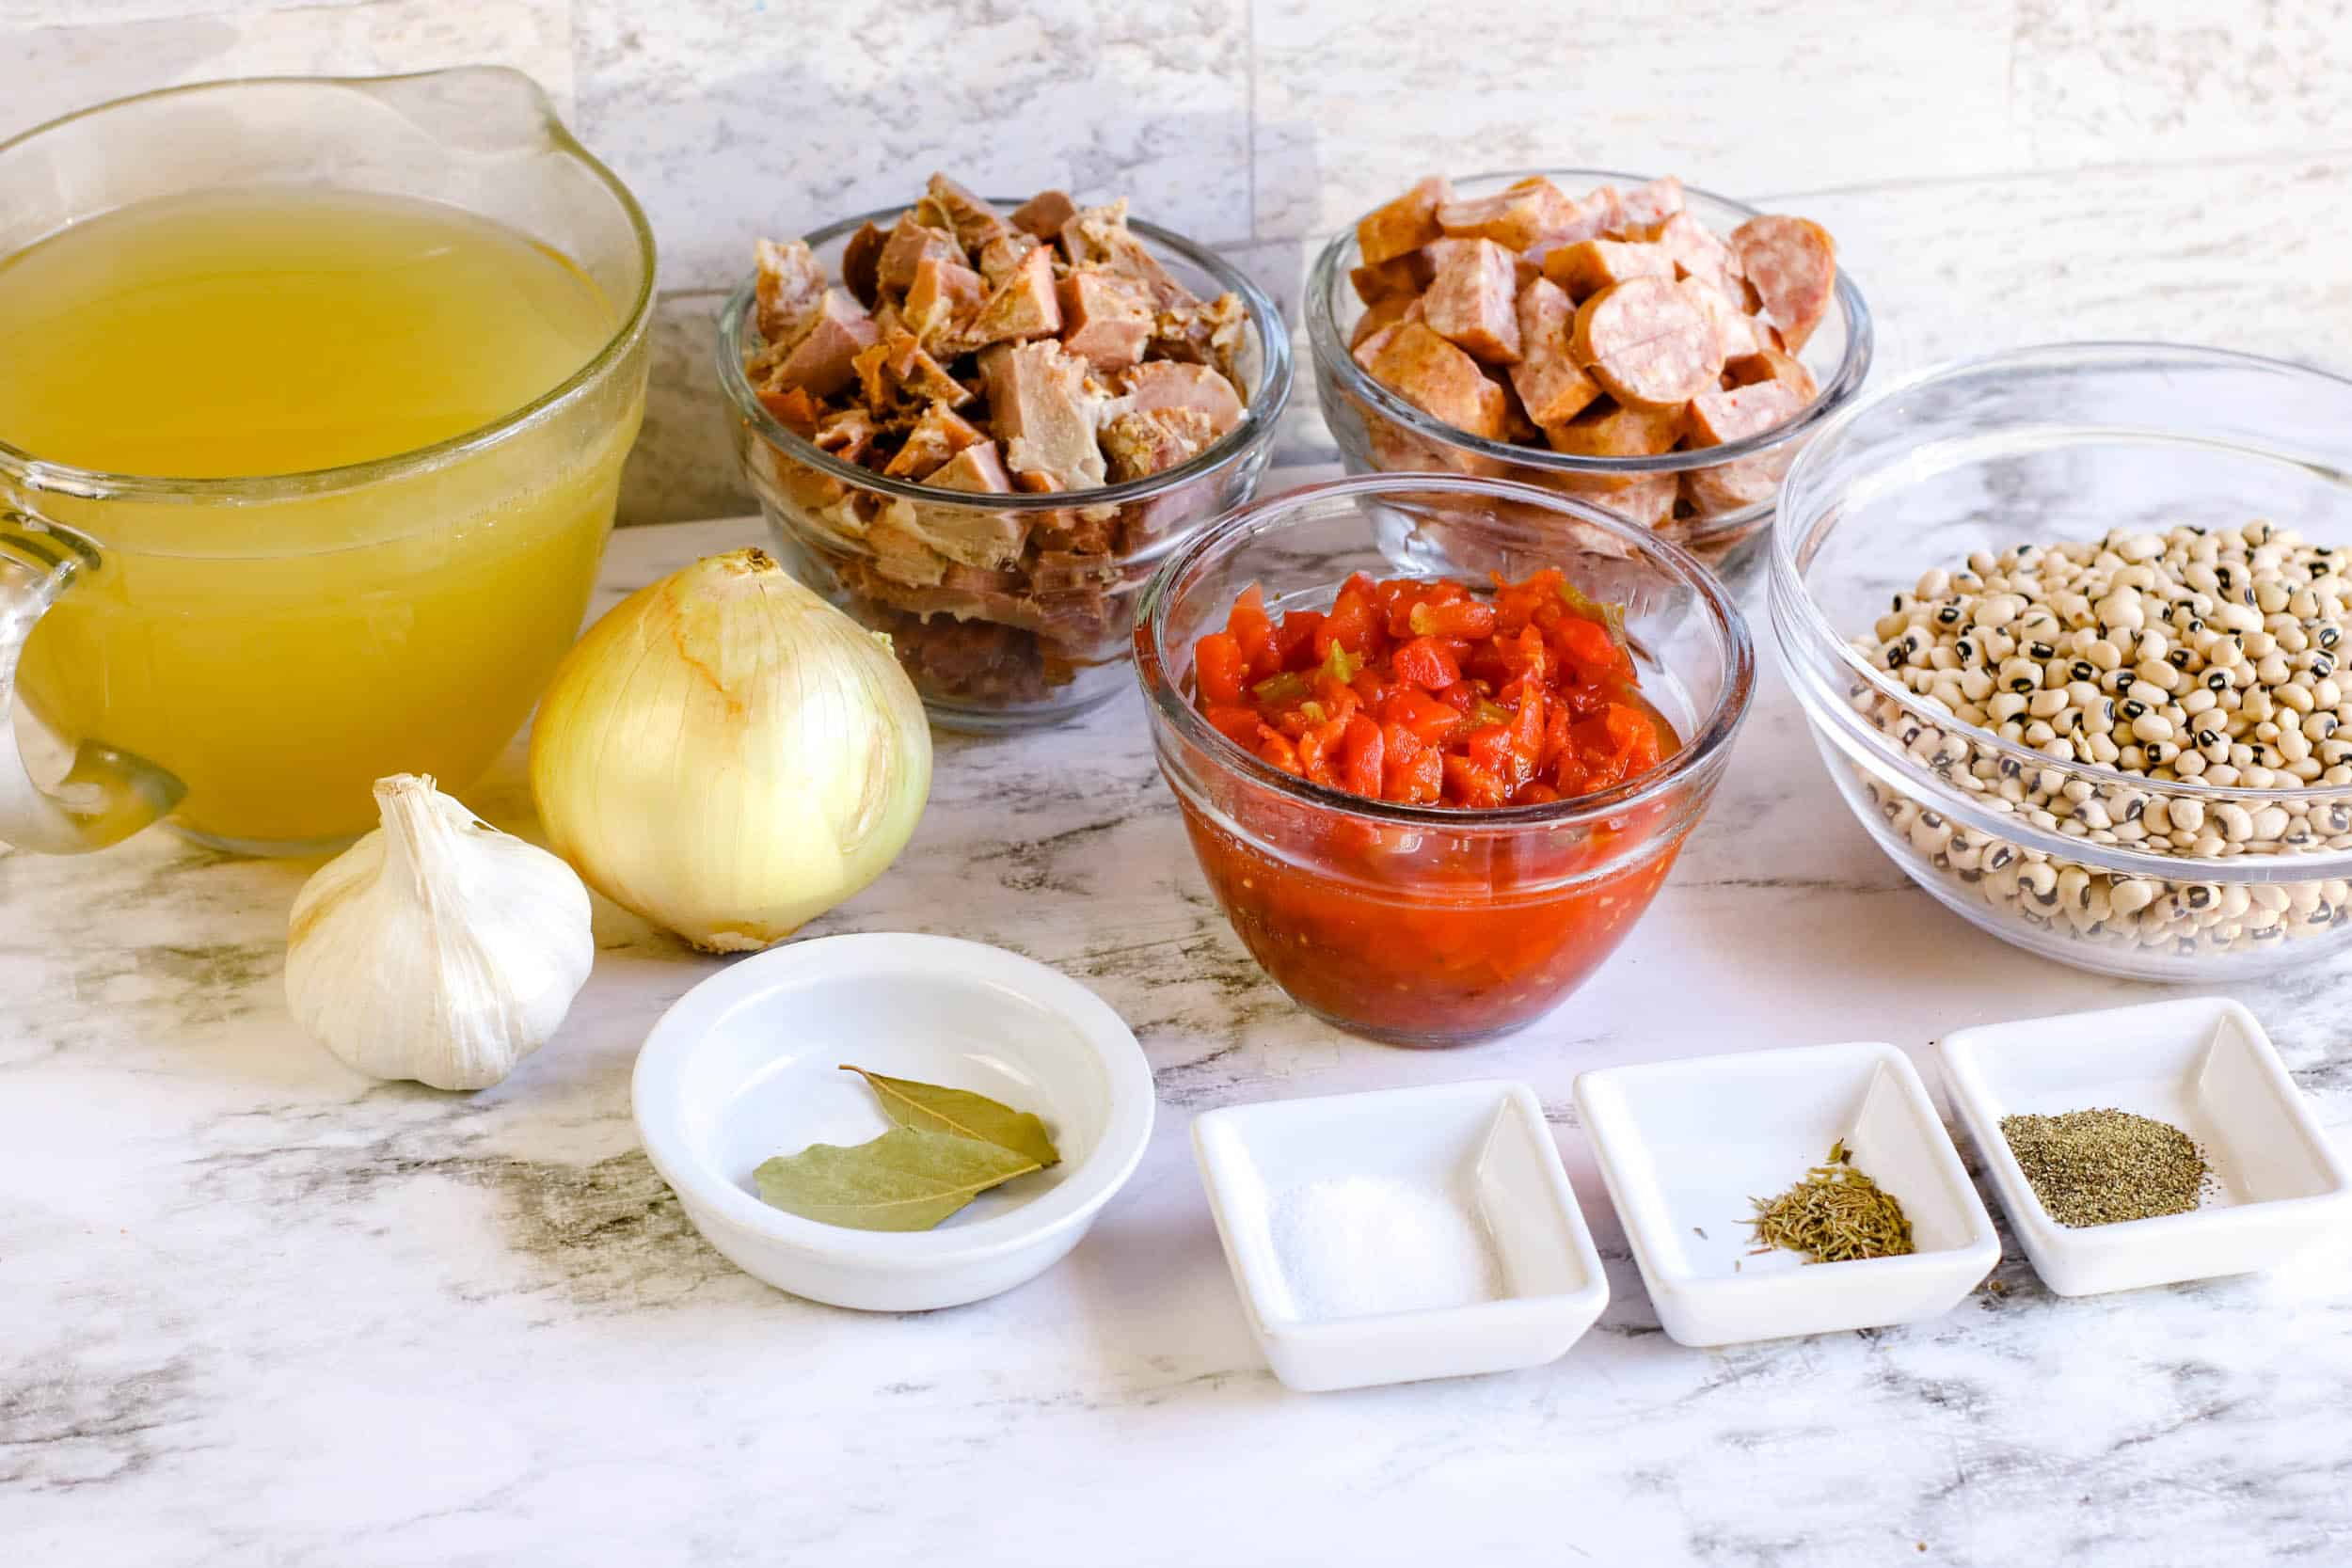 Ingredients for Instant Pot Spicy Black Eyed Peas with Sausage